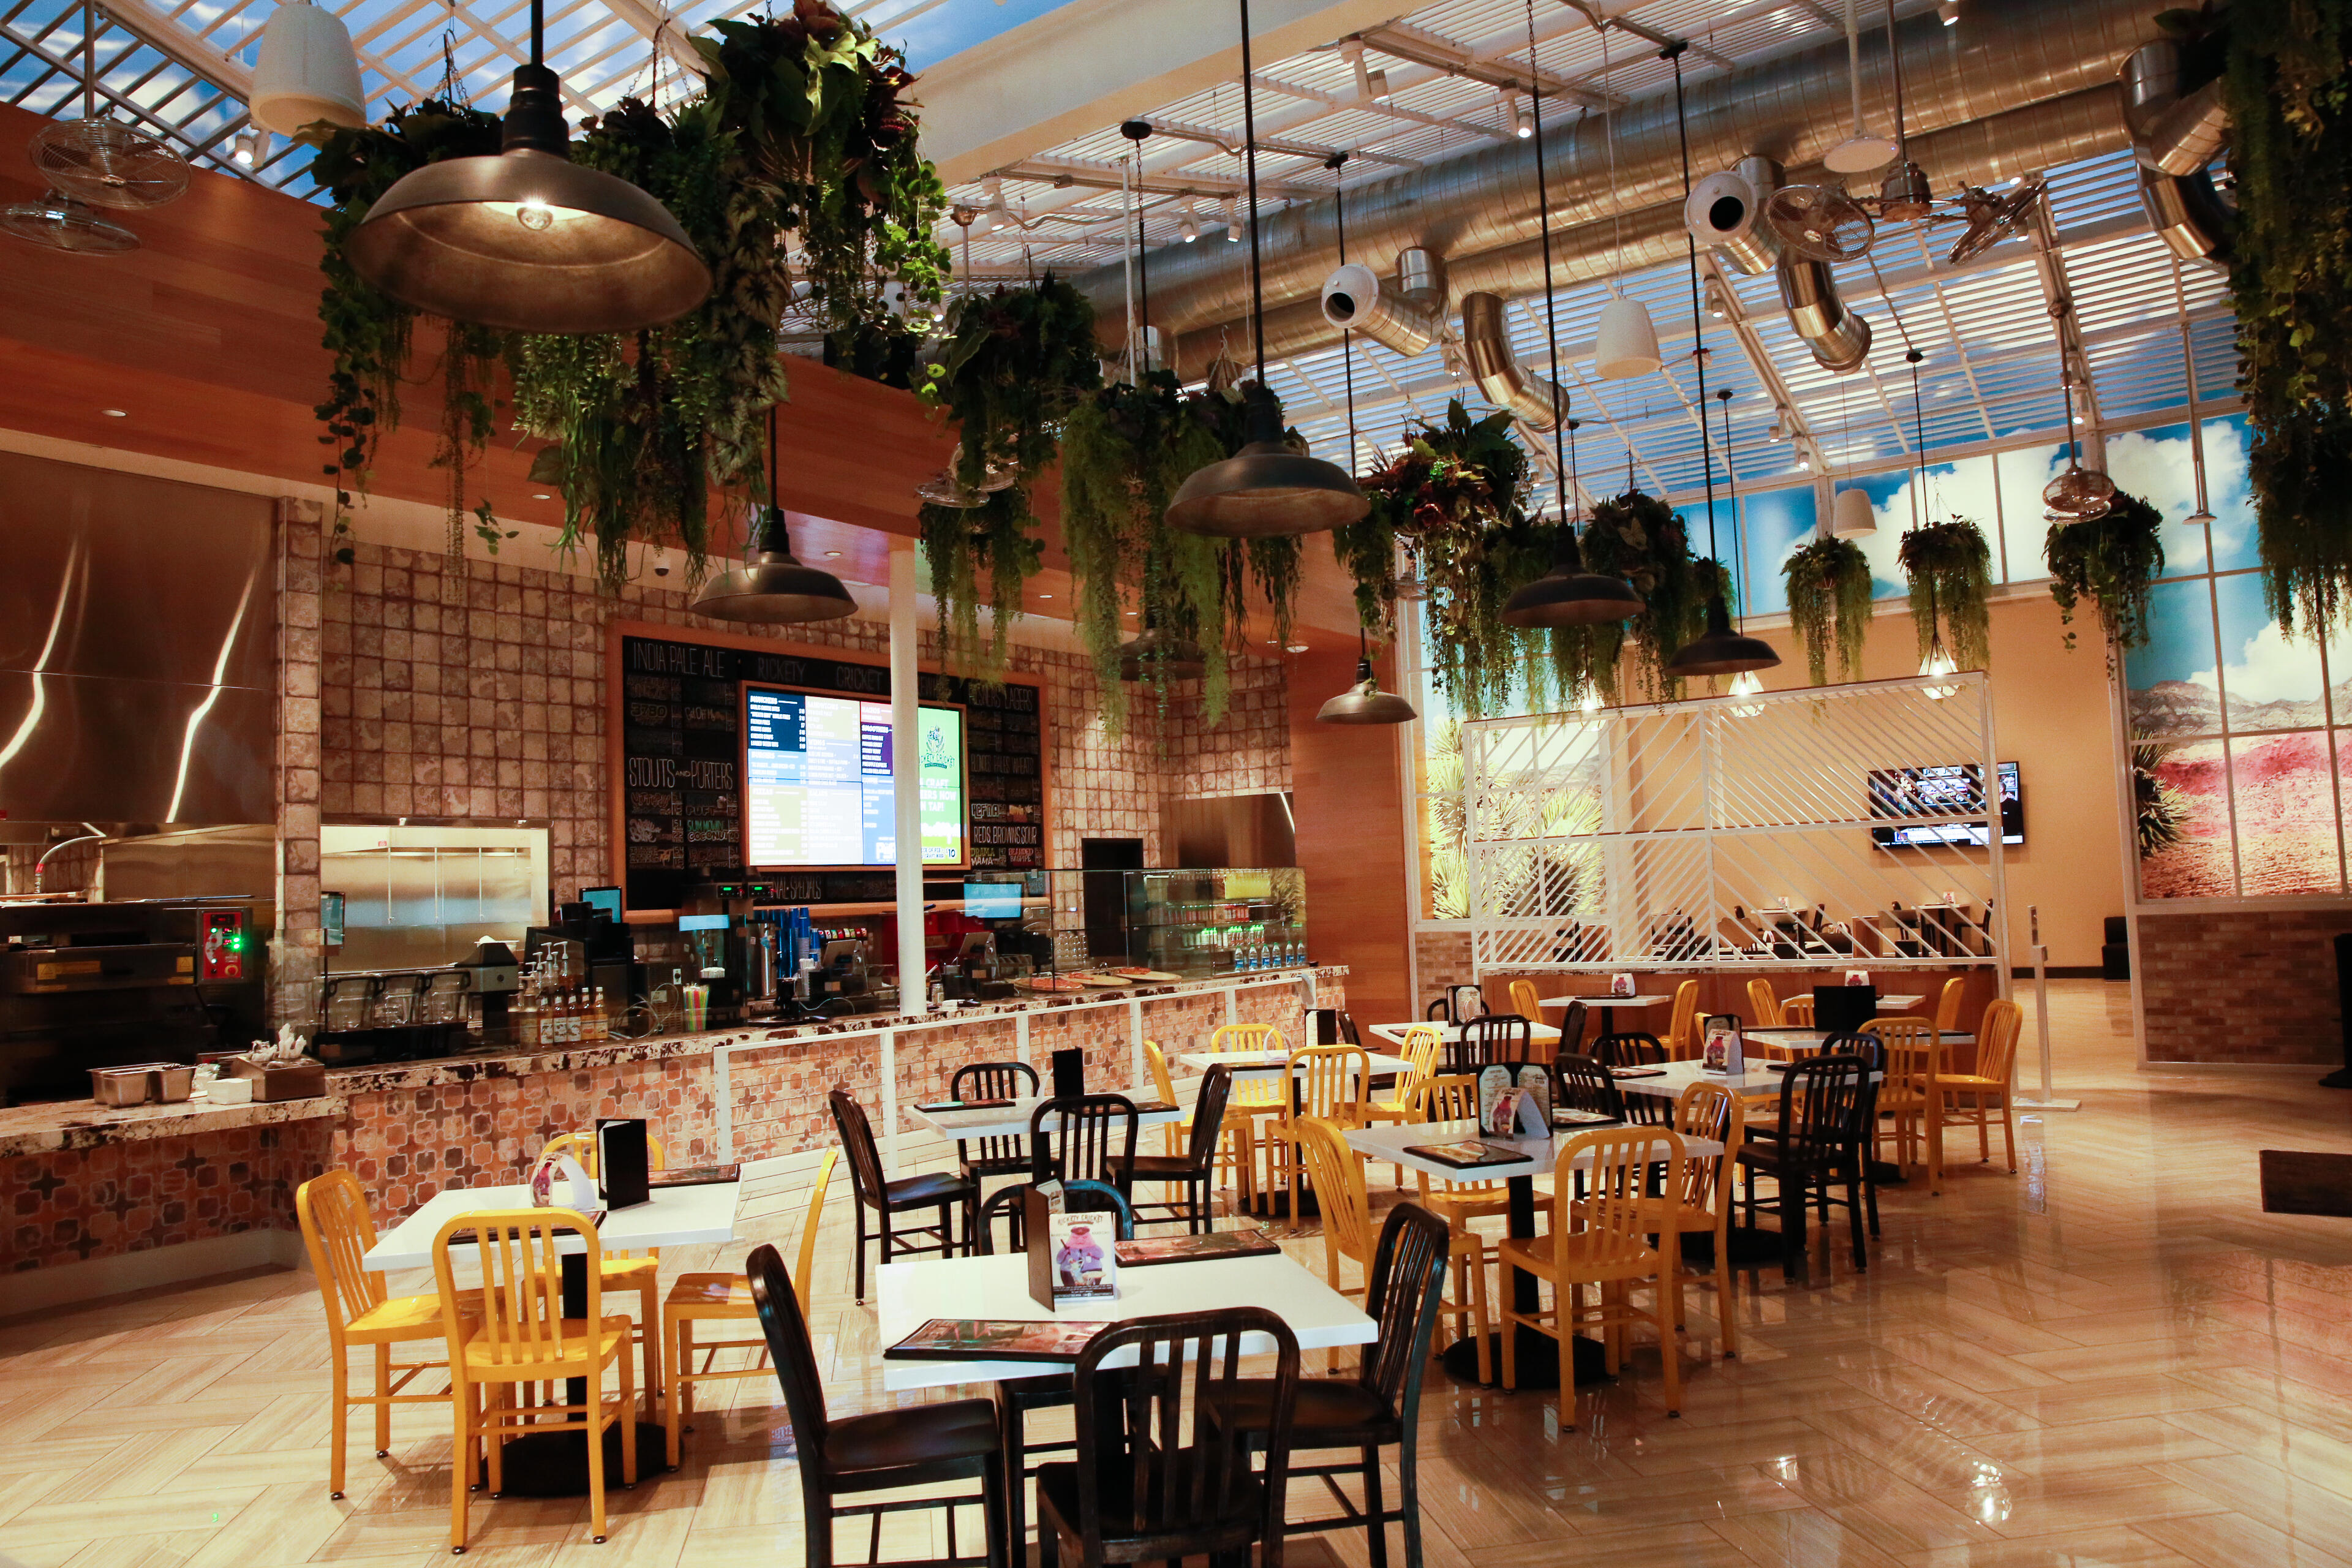 """A few months ago, Planet 13 opened up the new """"entertainment facilities"""" just across the main hall from the store itself. The restaurant features pizza, beer and other munchies."""